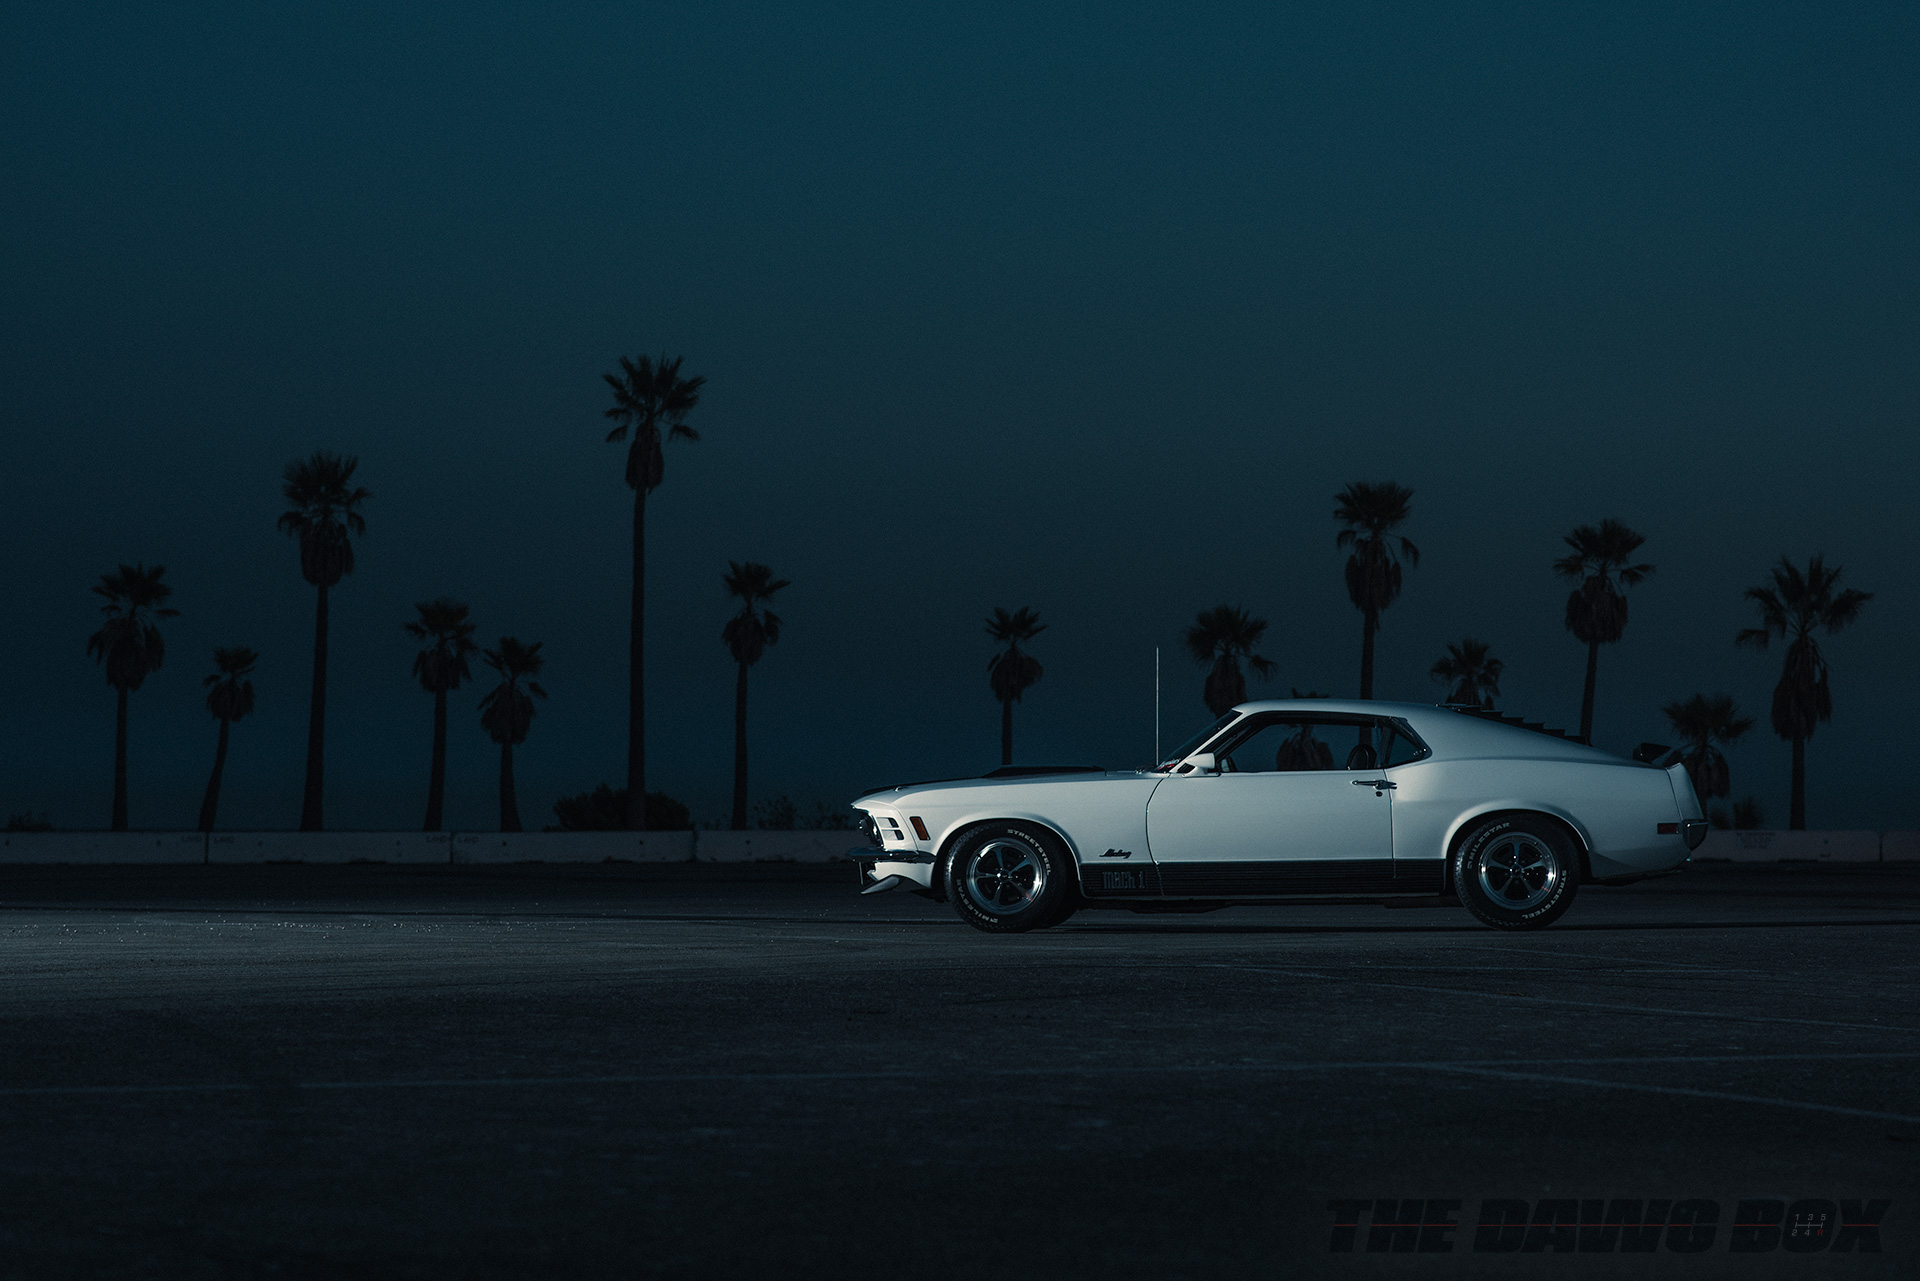 Night shot of the White 1970 Mustang Mach 1 with palm trees in the background